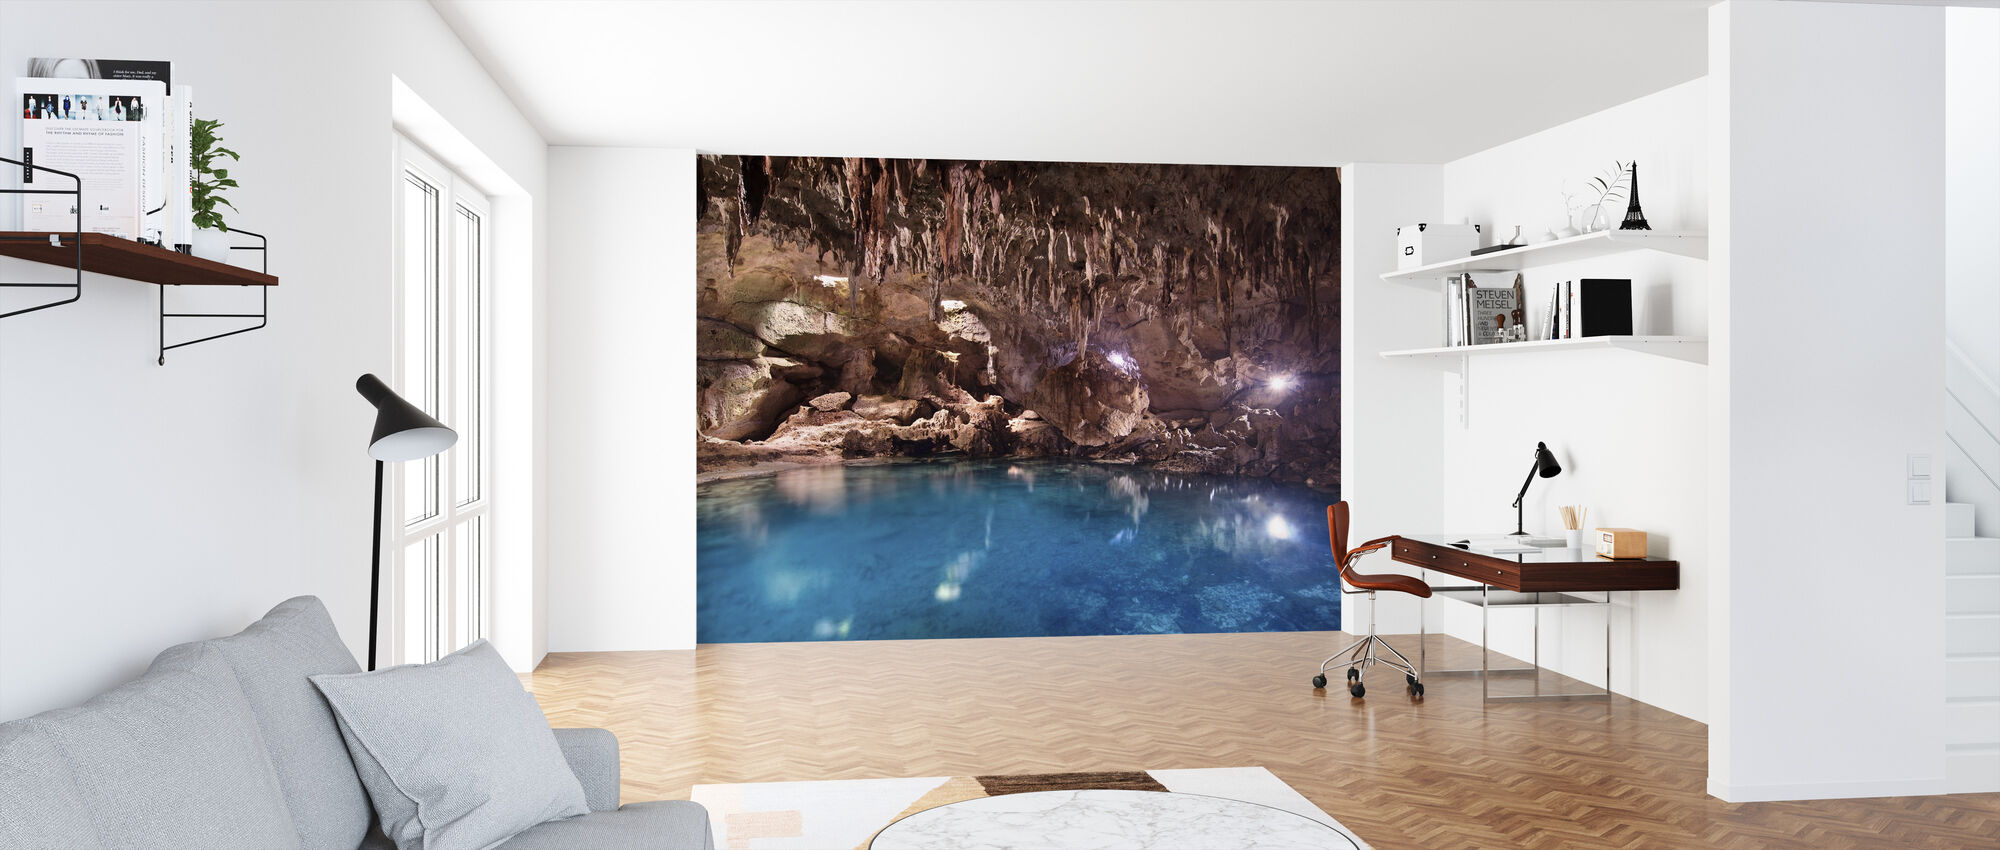 Hinagdanan Cave Pool - Wallpaper - Office